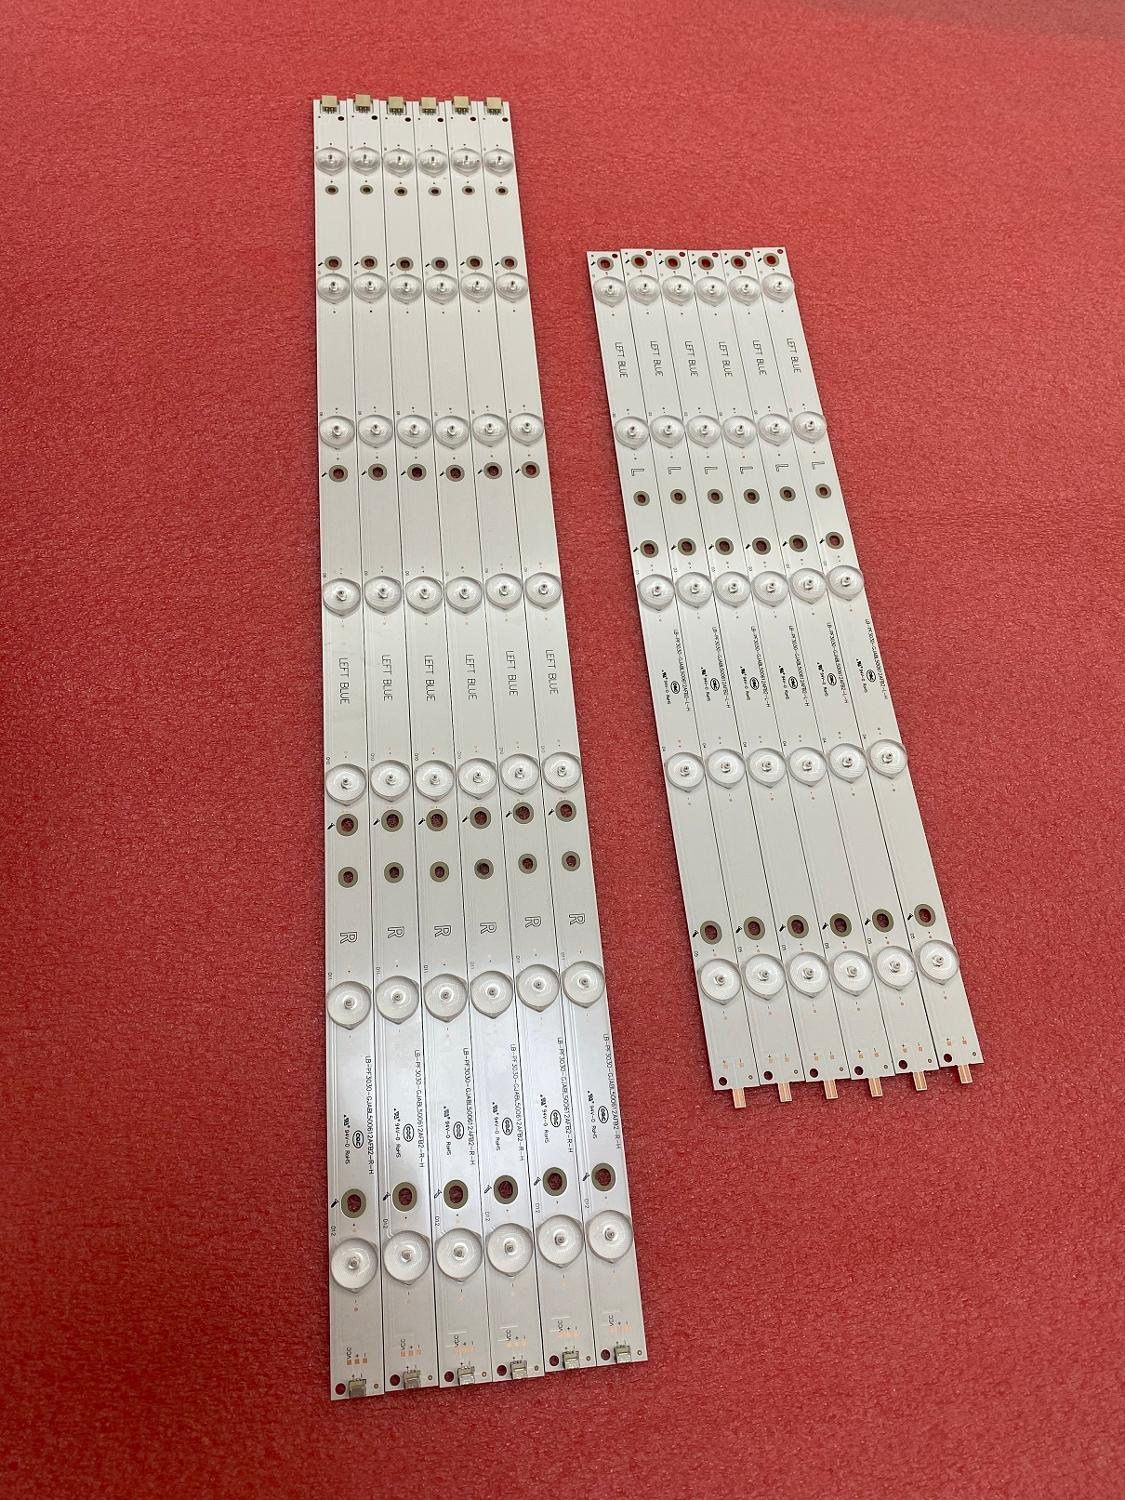 New 5set=60 PCS LED Backlight Strip For 50inch 500TT67 V2 500TT68 V2 CL-2K15-D2P5-500-D612-V1 R L